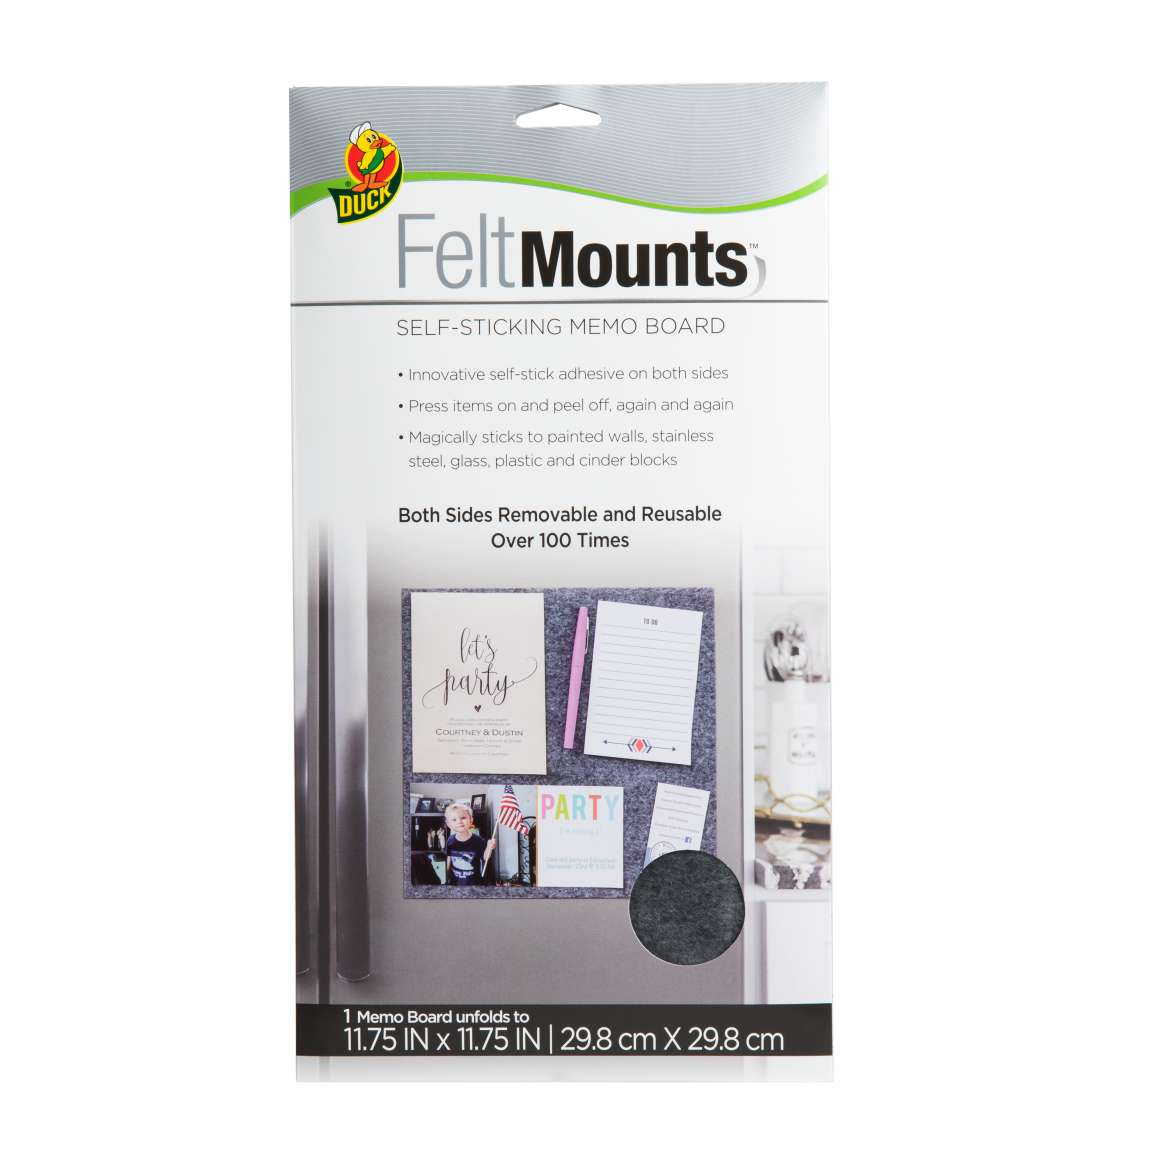 Duck® FeltMounts™ Self-Sticking Memo Board Image